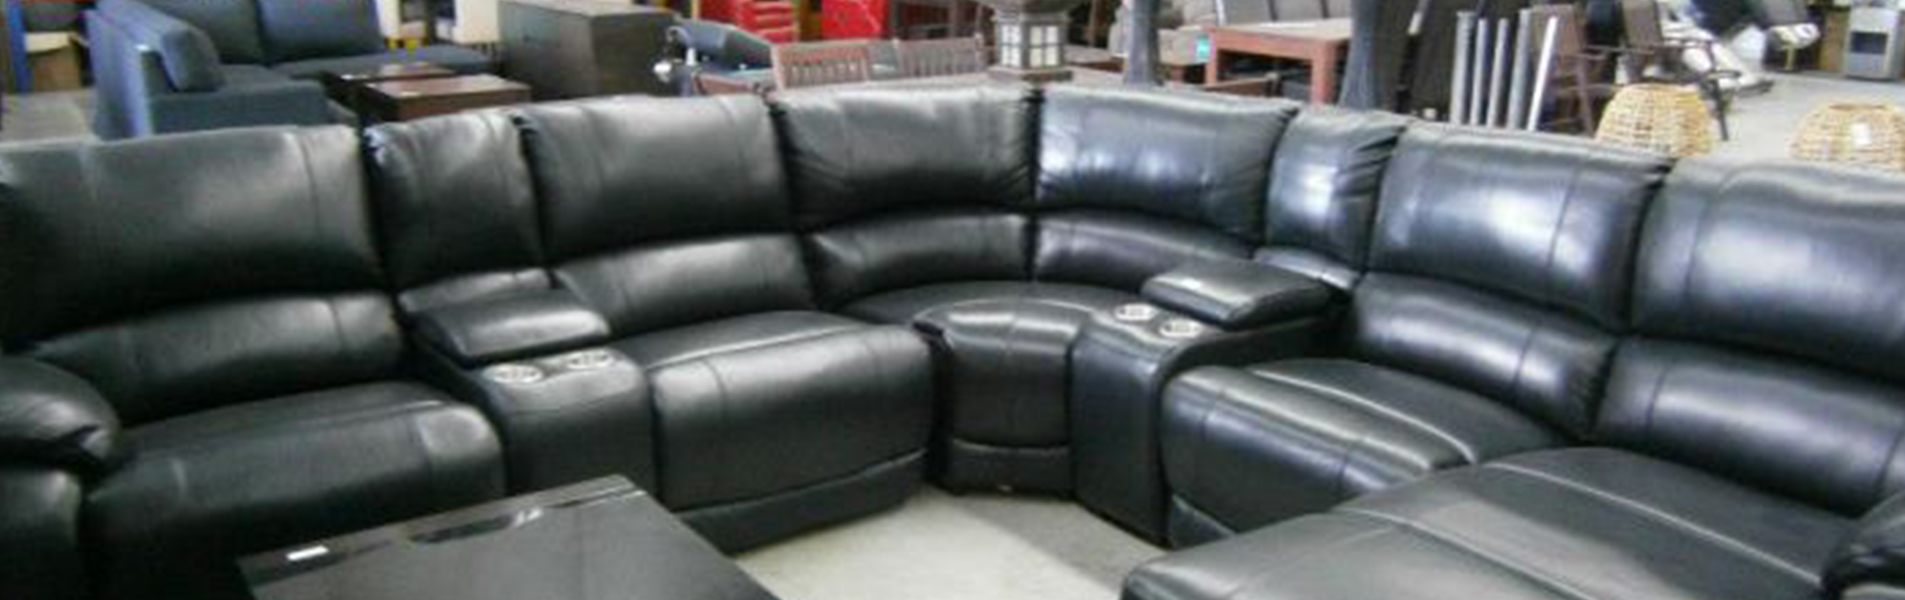 Furniture auctions online johannesburg auctions in for Furniture johannesburg